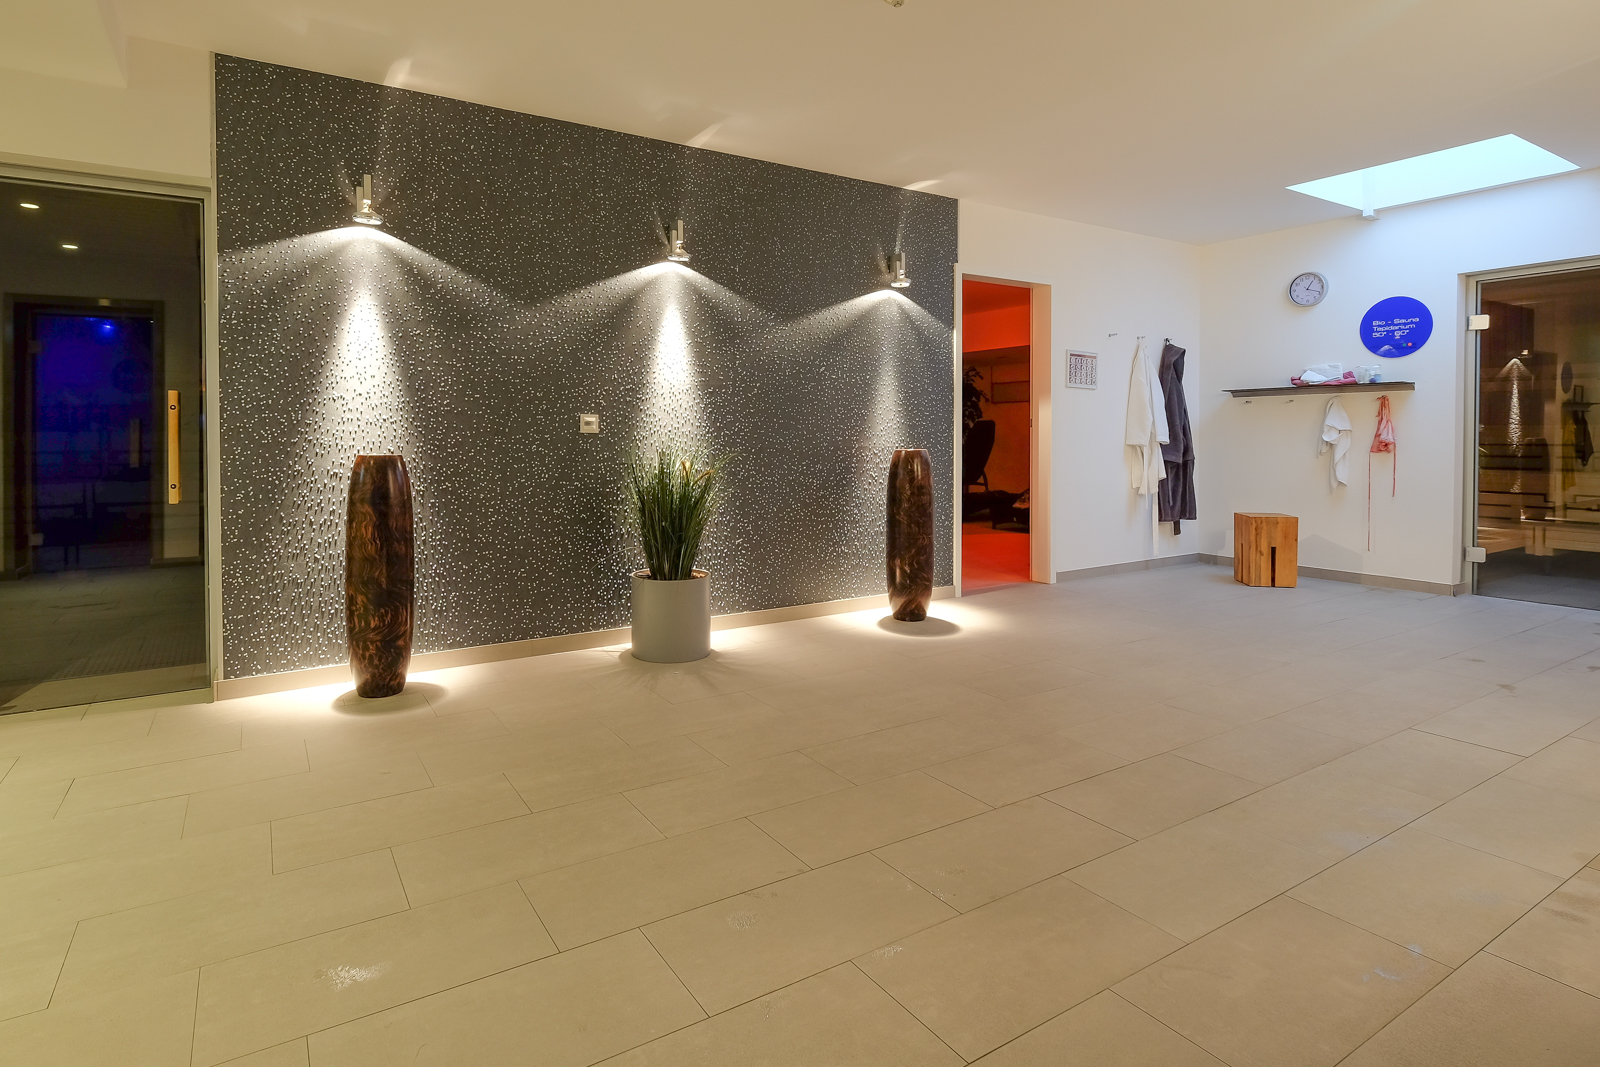 Fotograf in Germering - AMBIANCE Sports & Spa Pasing